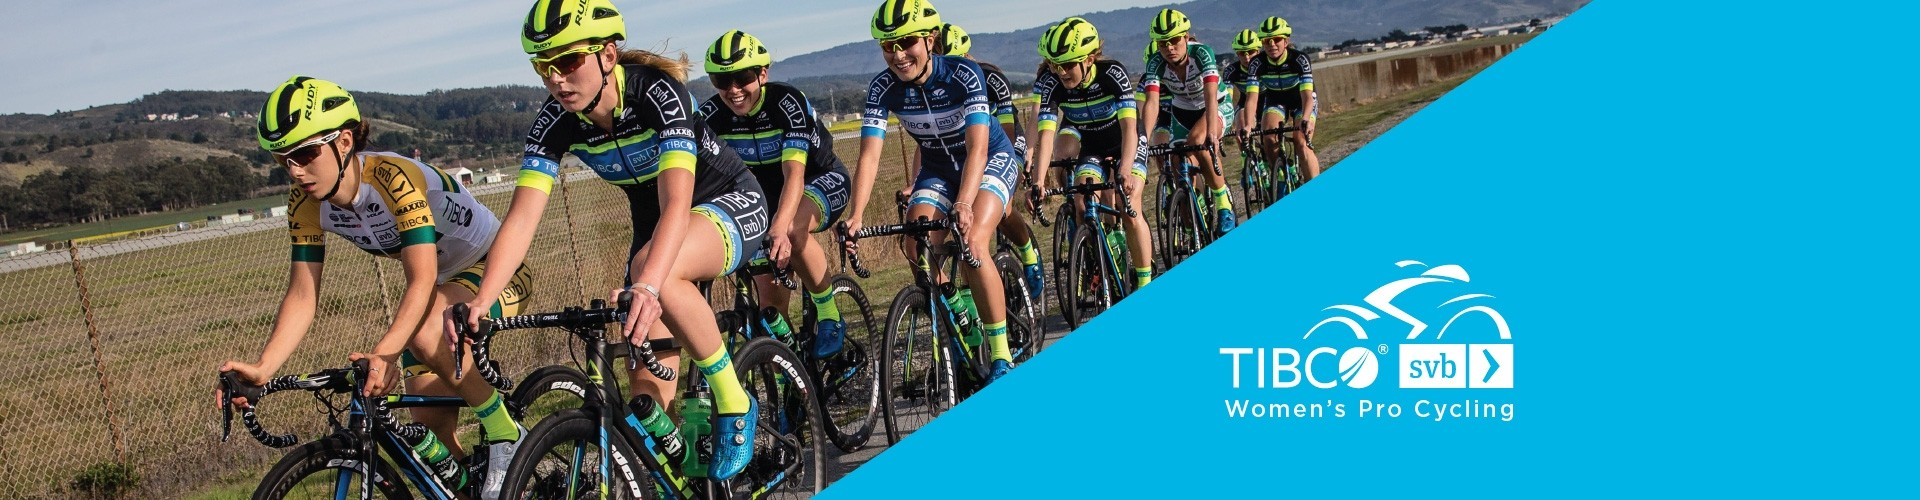 TIBCO Invitation:  Ride with the Pros!